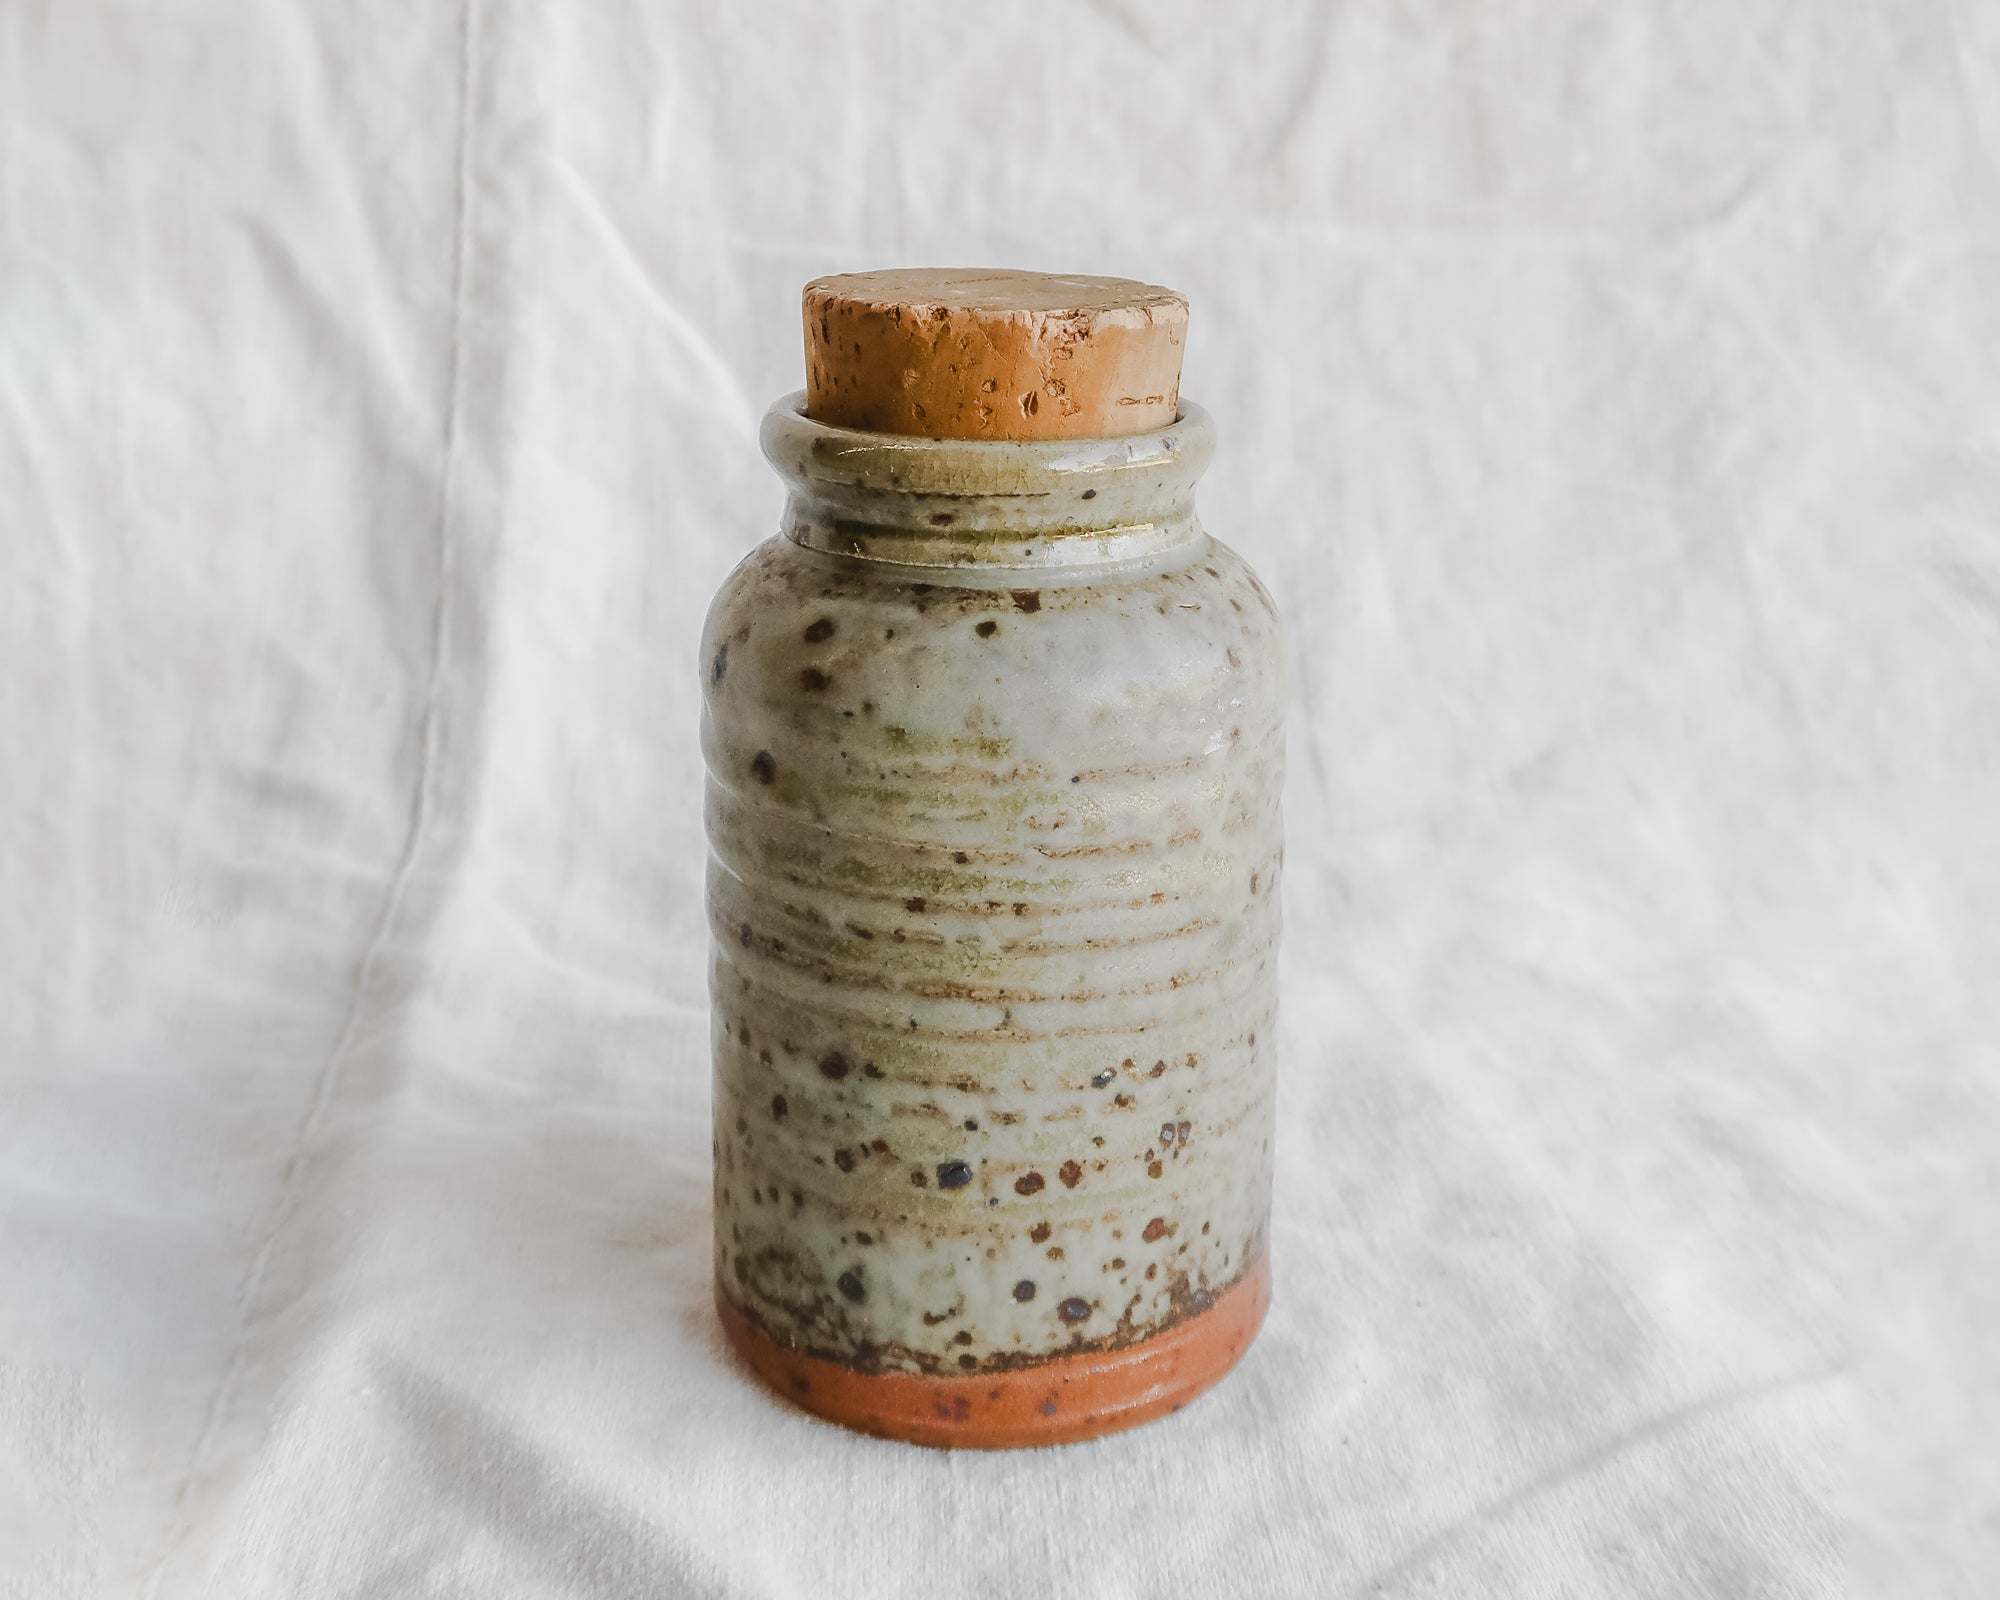 Speckled Stoneware Vessel with Cork